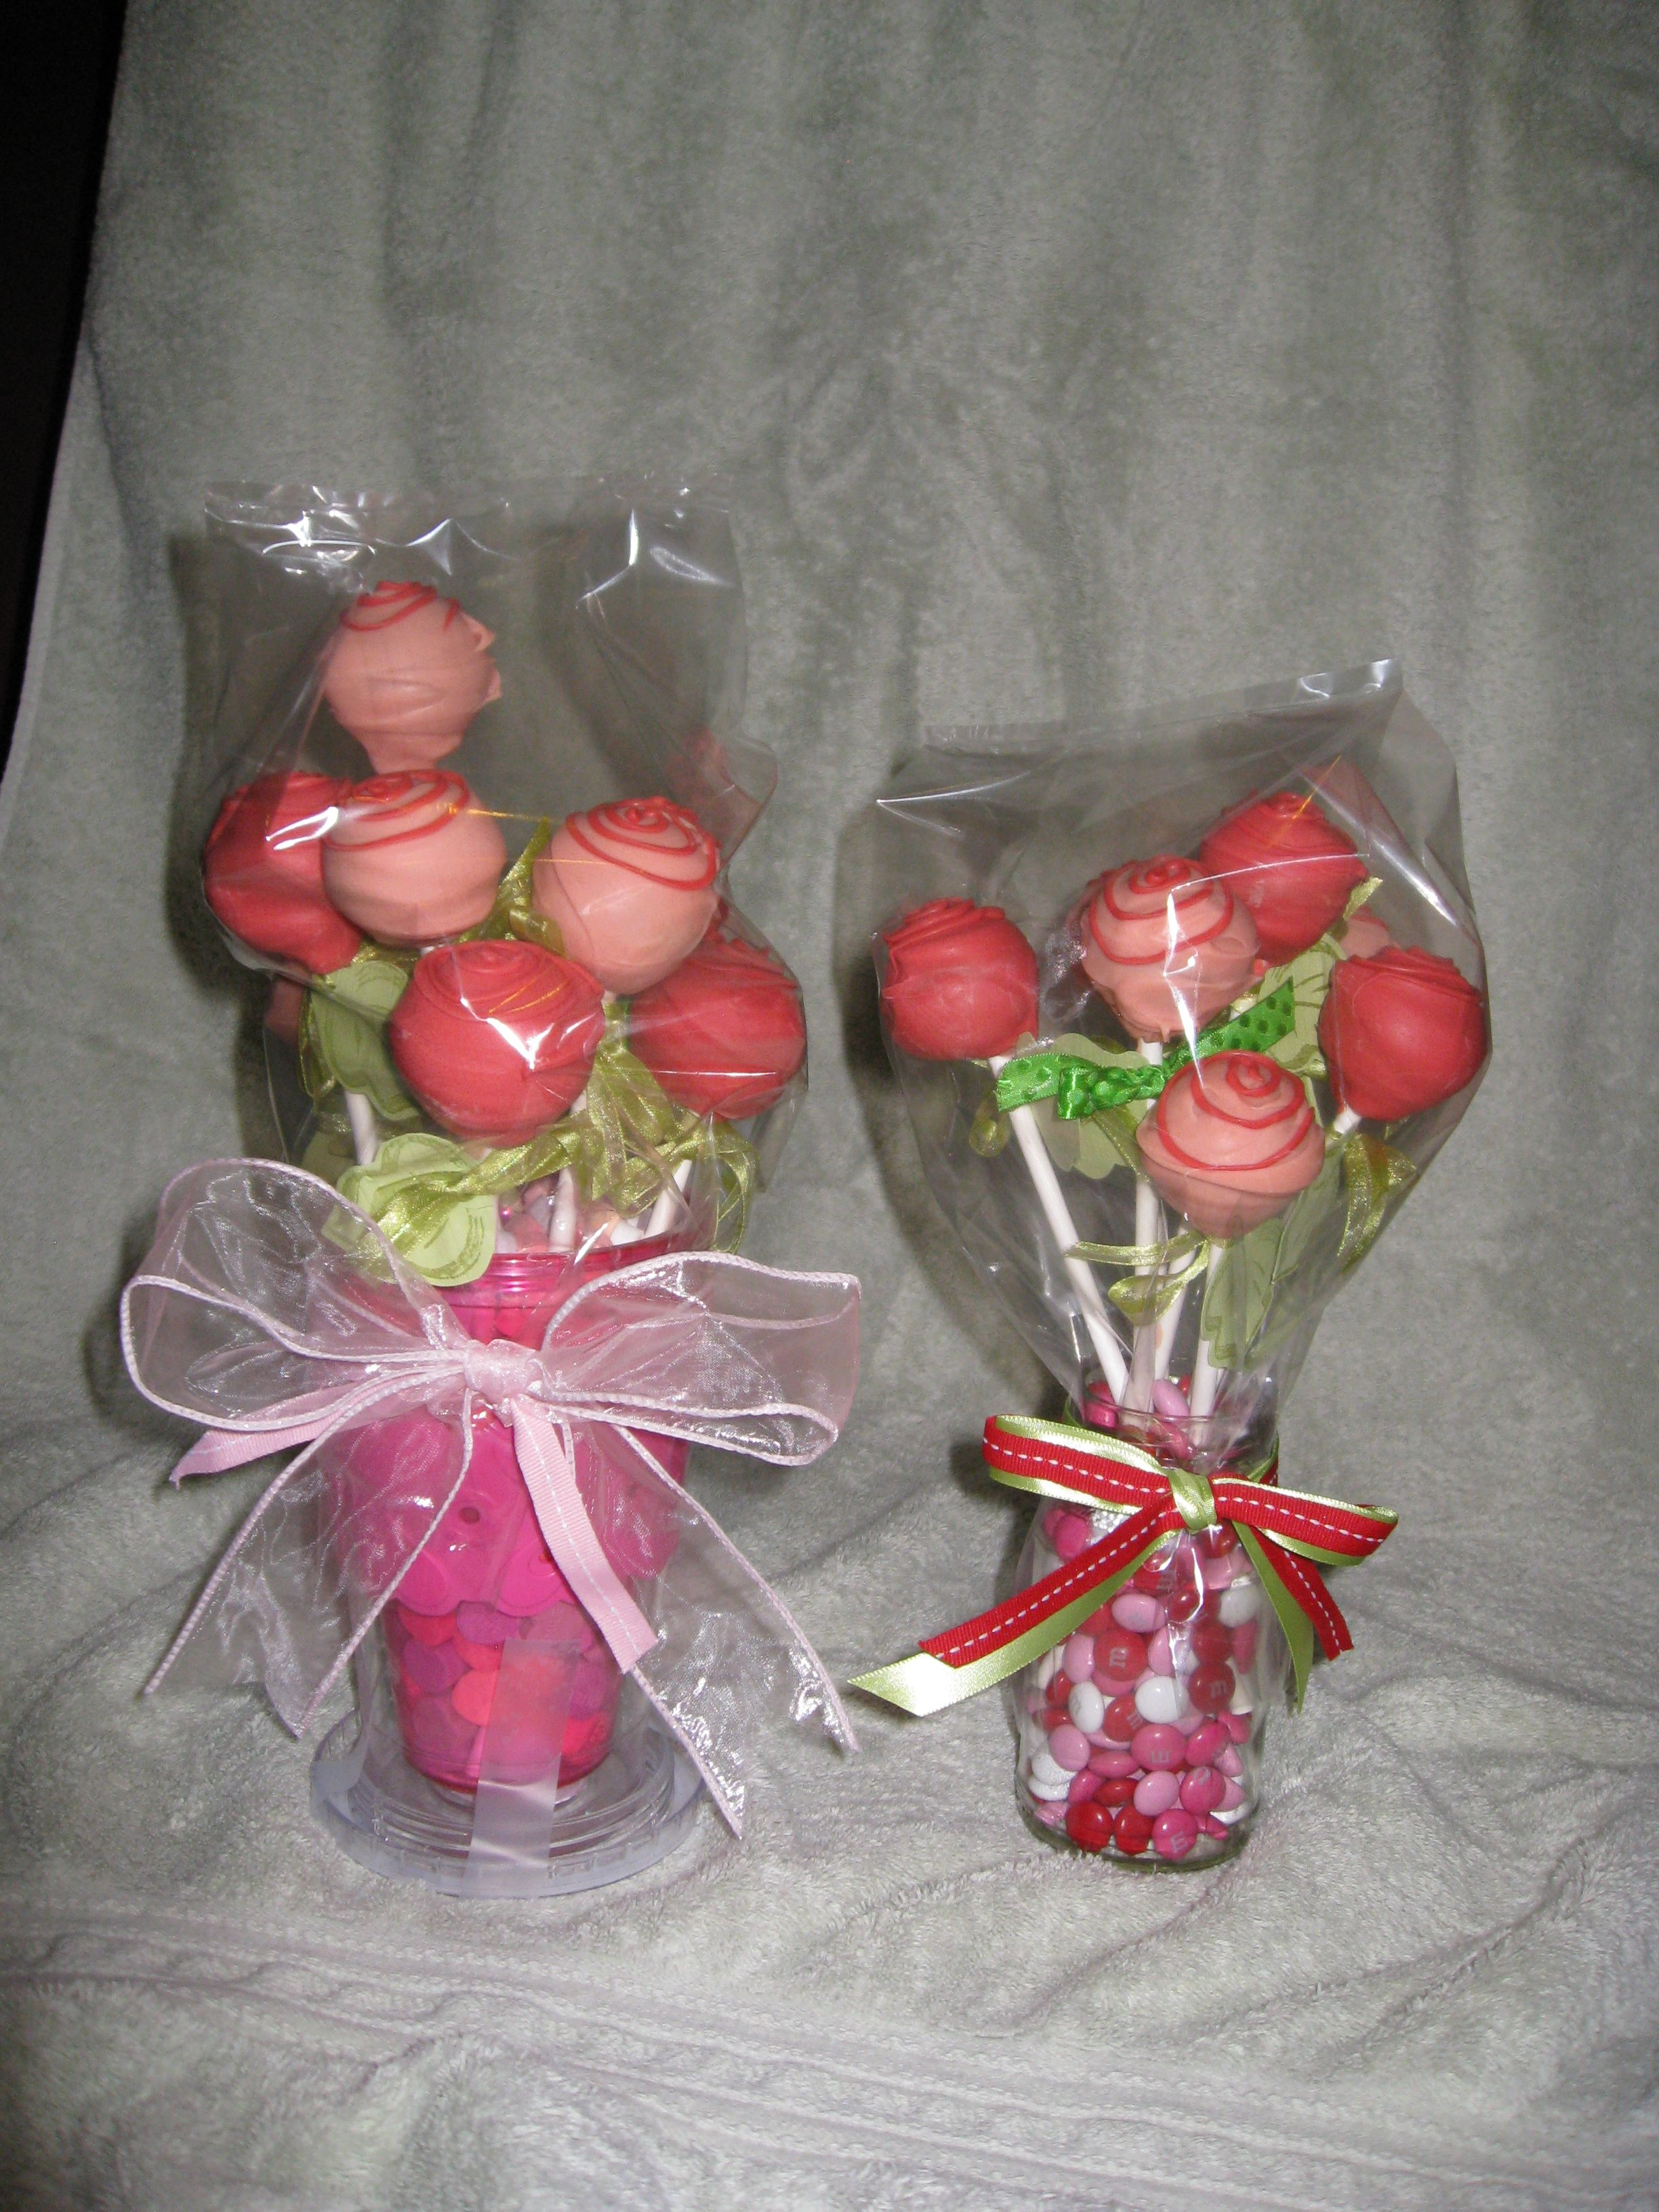 Rose Cake Pop Bouquets for St. Pat's Cake Walk - Jan 2013 #cakepopbouquet